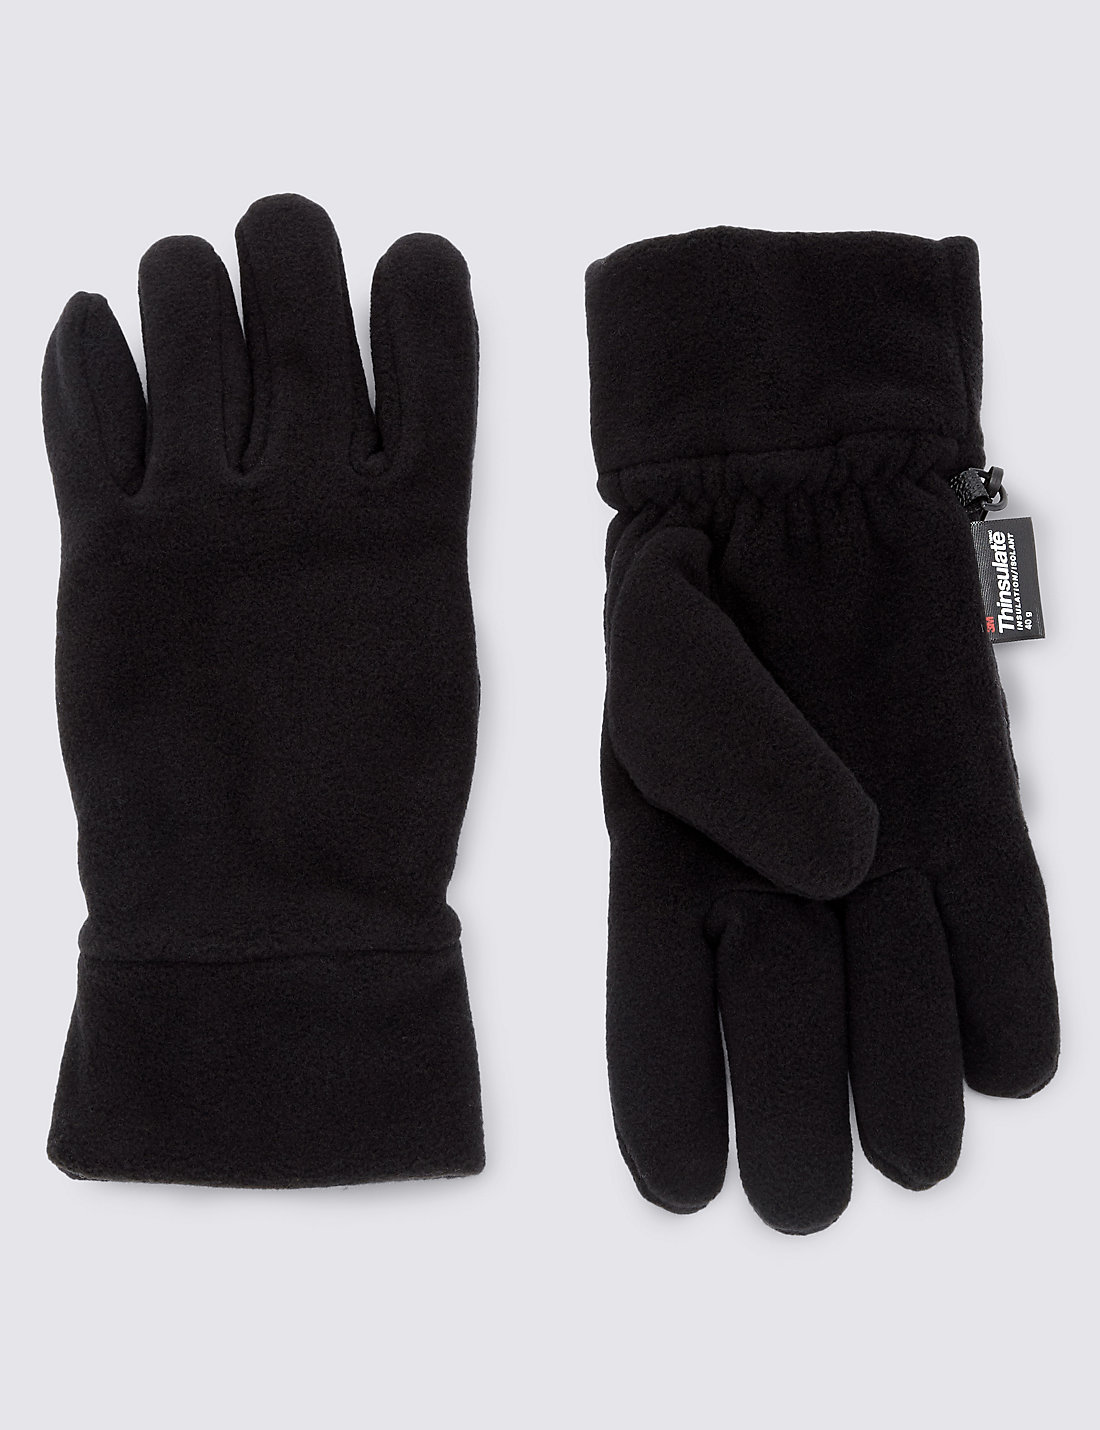 Mens fleece gloves xxl - Fleece Gloves With Thinsulate